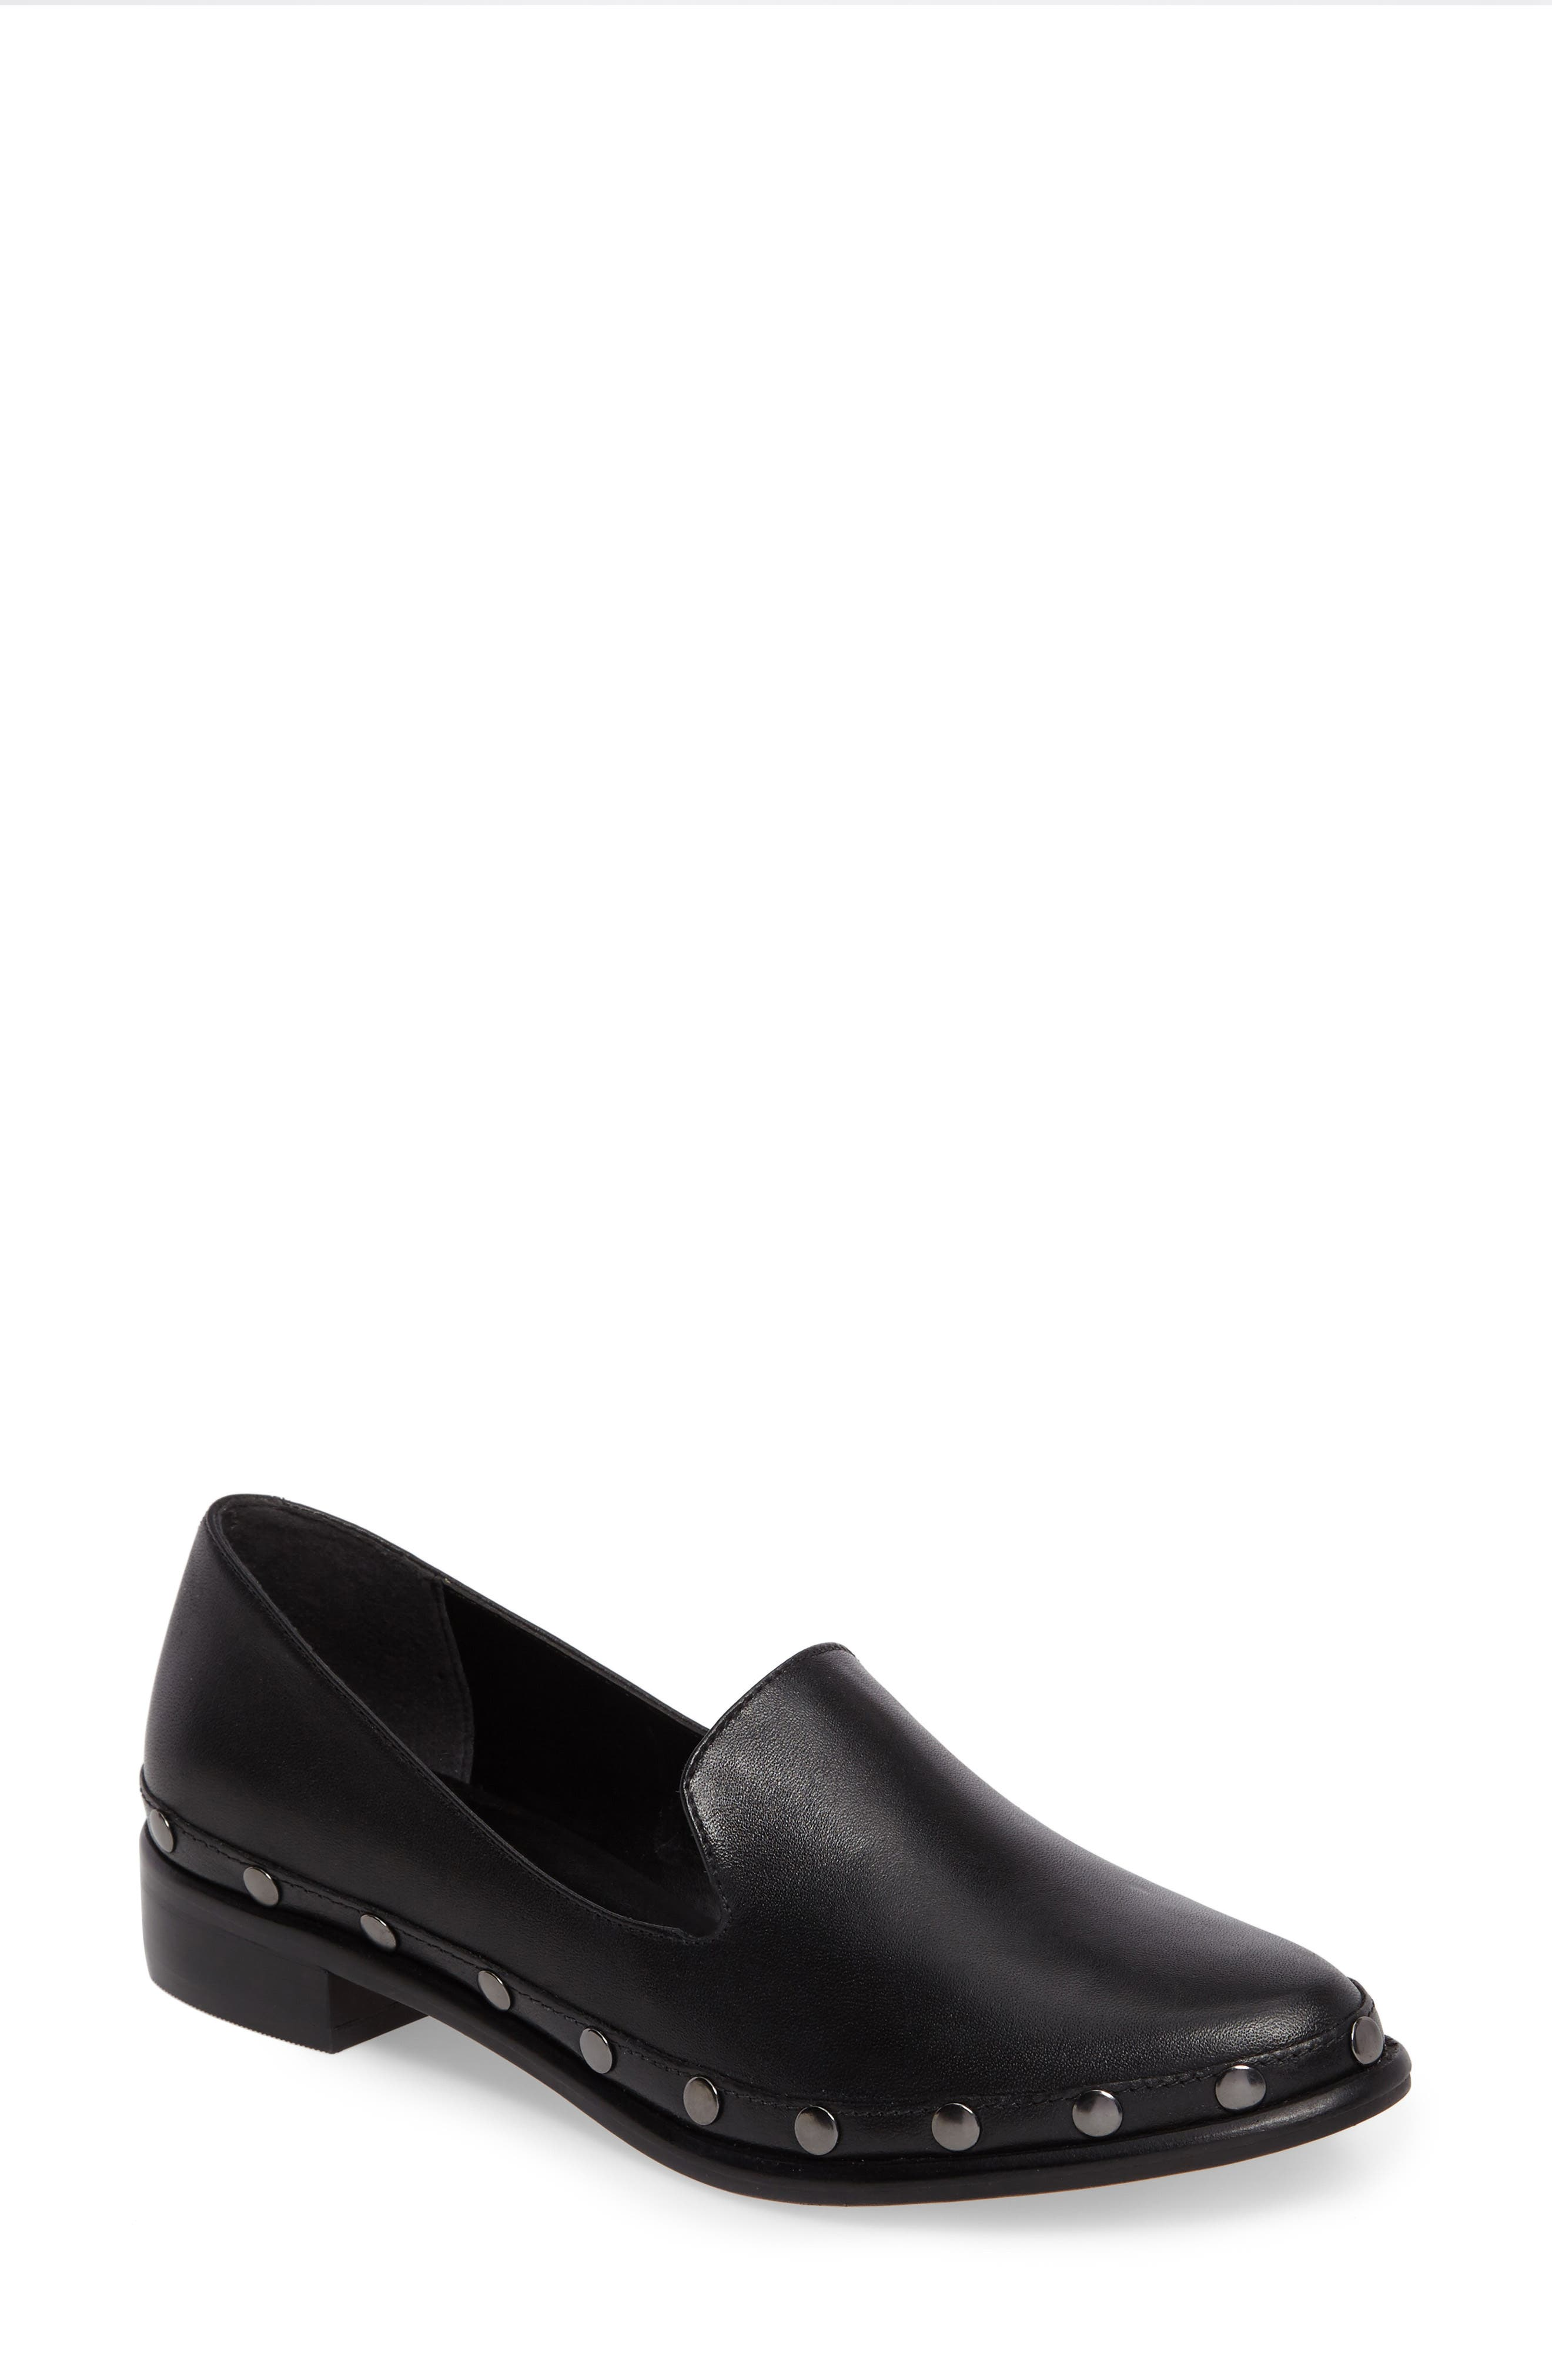 M4D3 Oceania Loafer,                             Main thumbnail 1, color,                             Black Leather